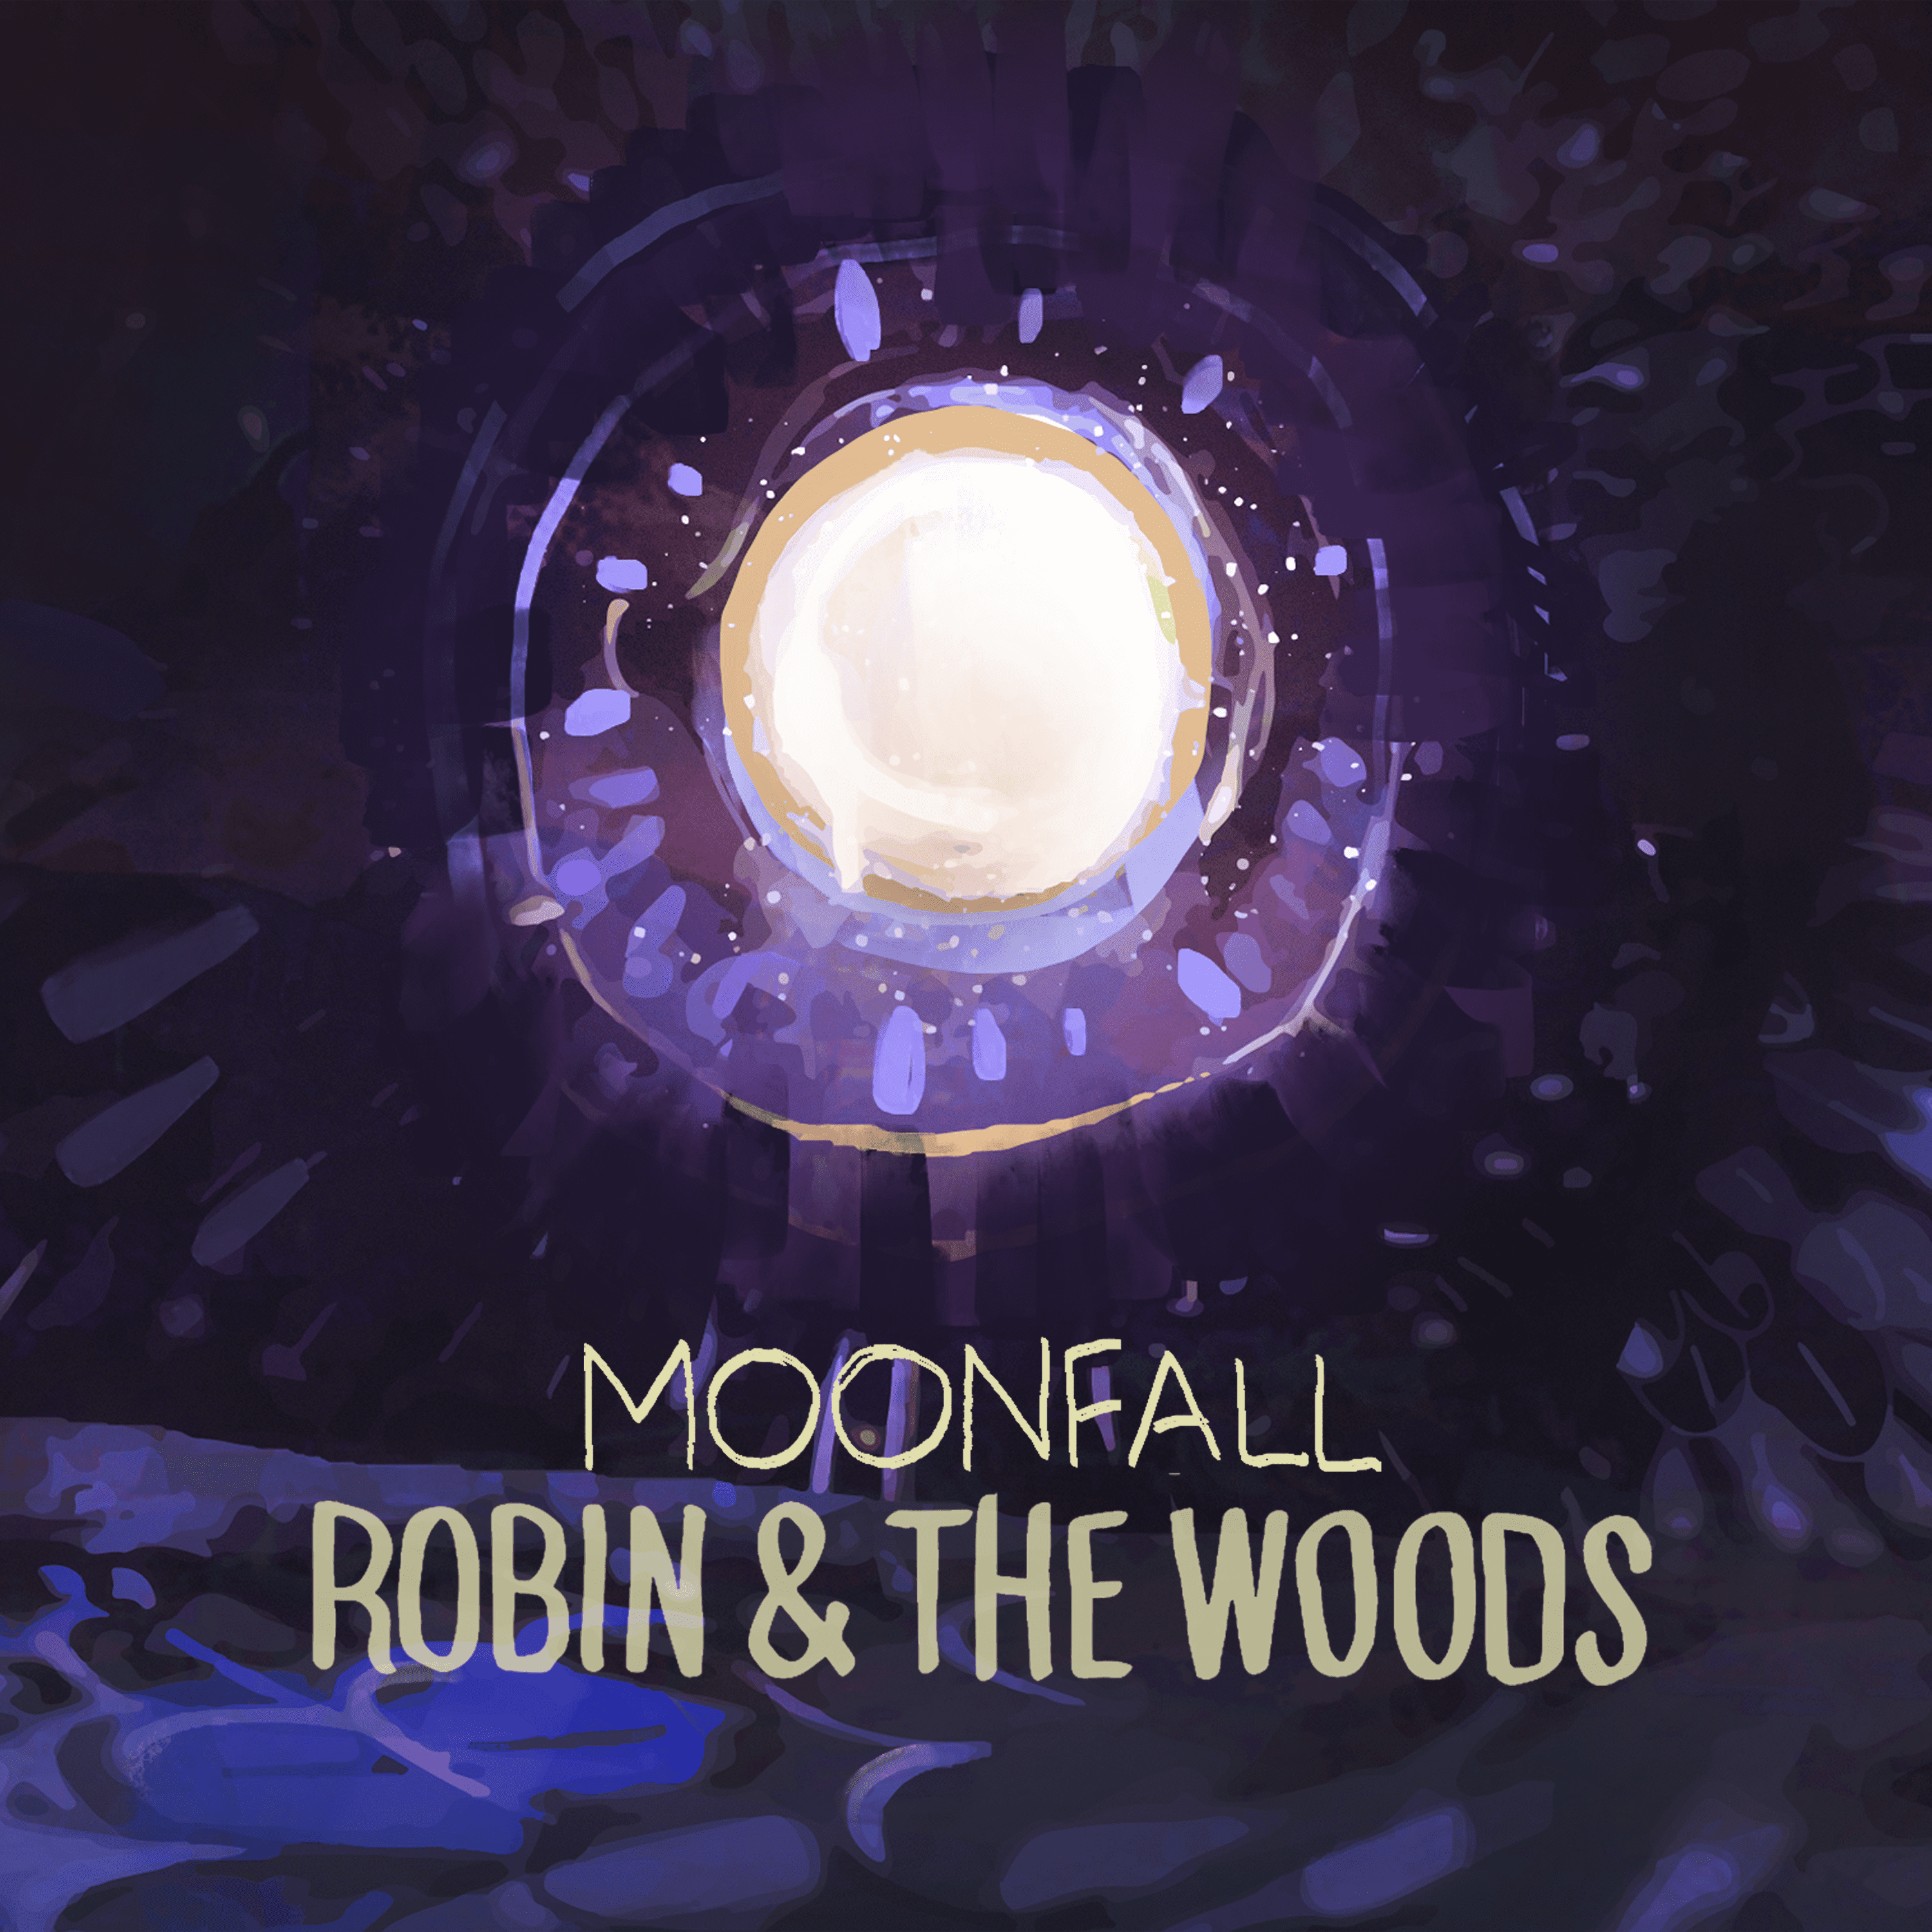 Cover album moonfall Robin & The Woods 1